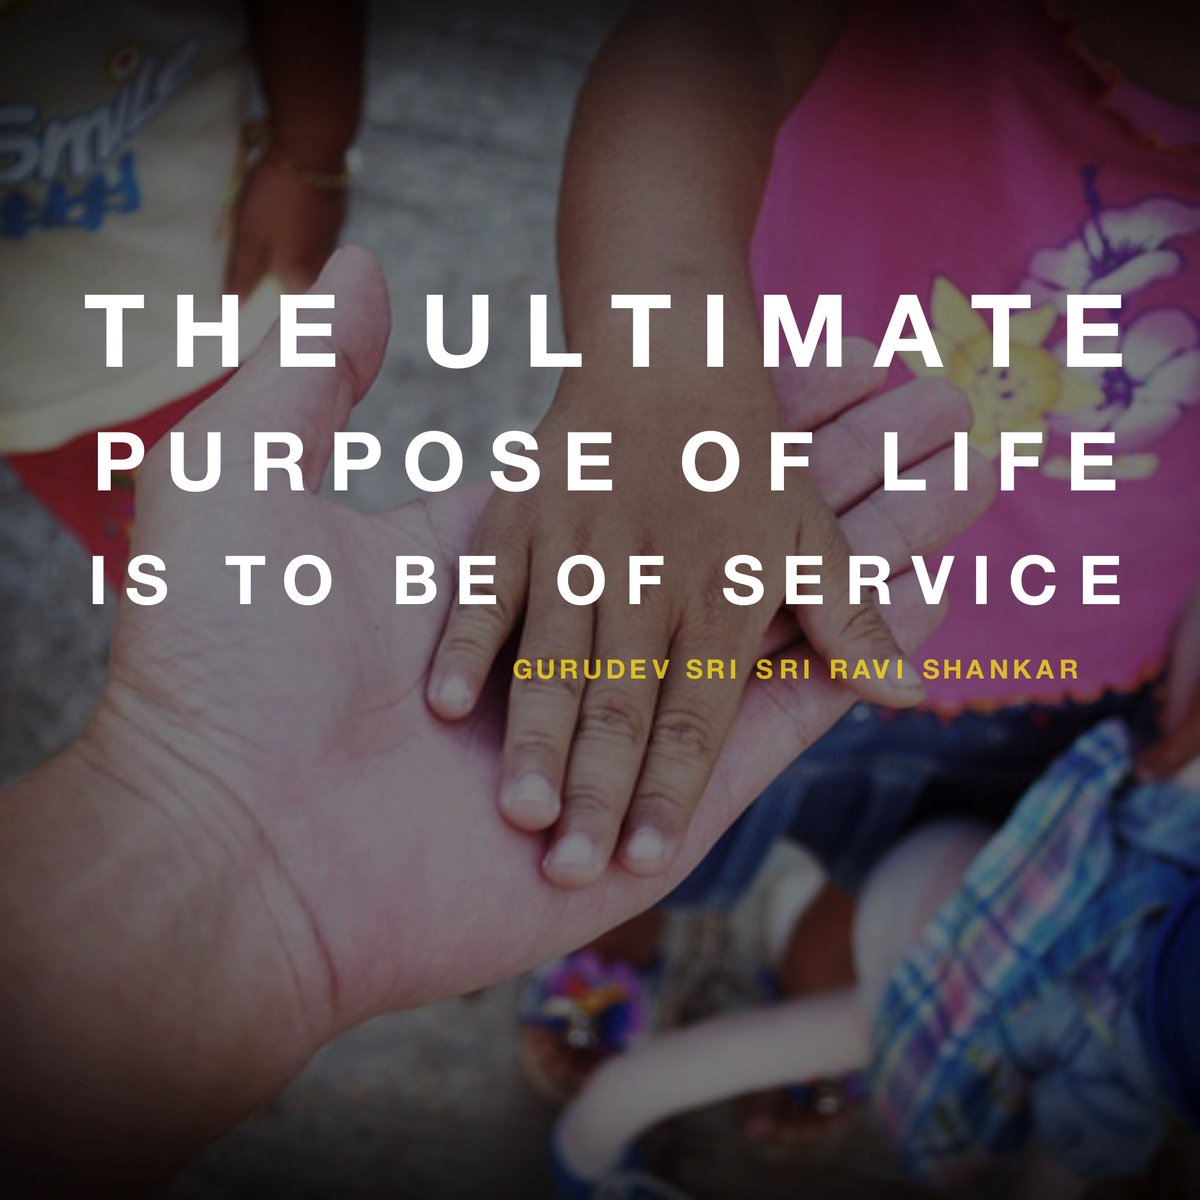 Serviceable quote The ultimate purpose of life is to be of service.